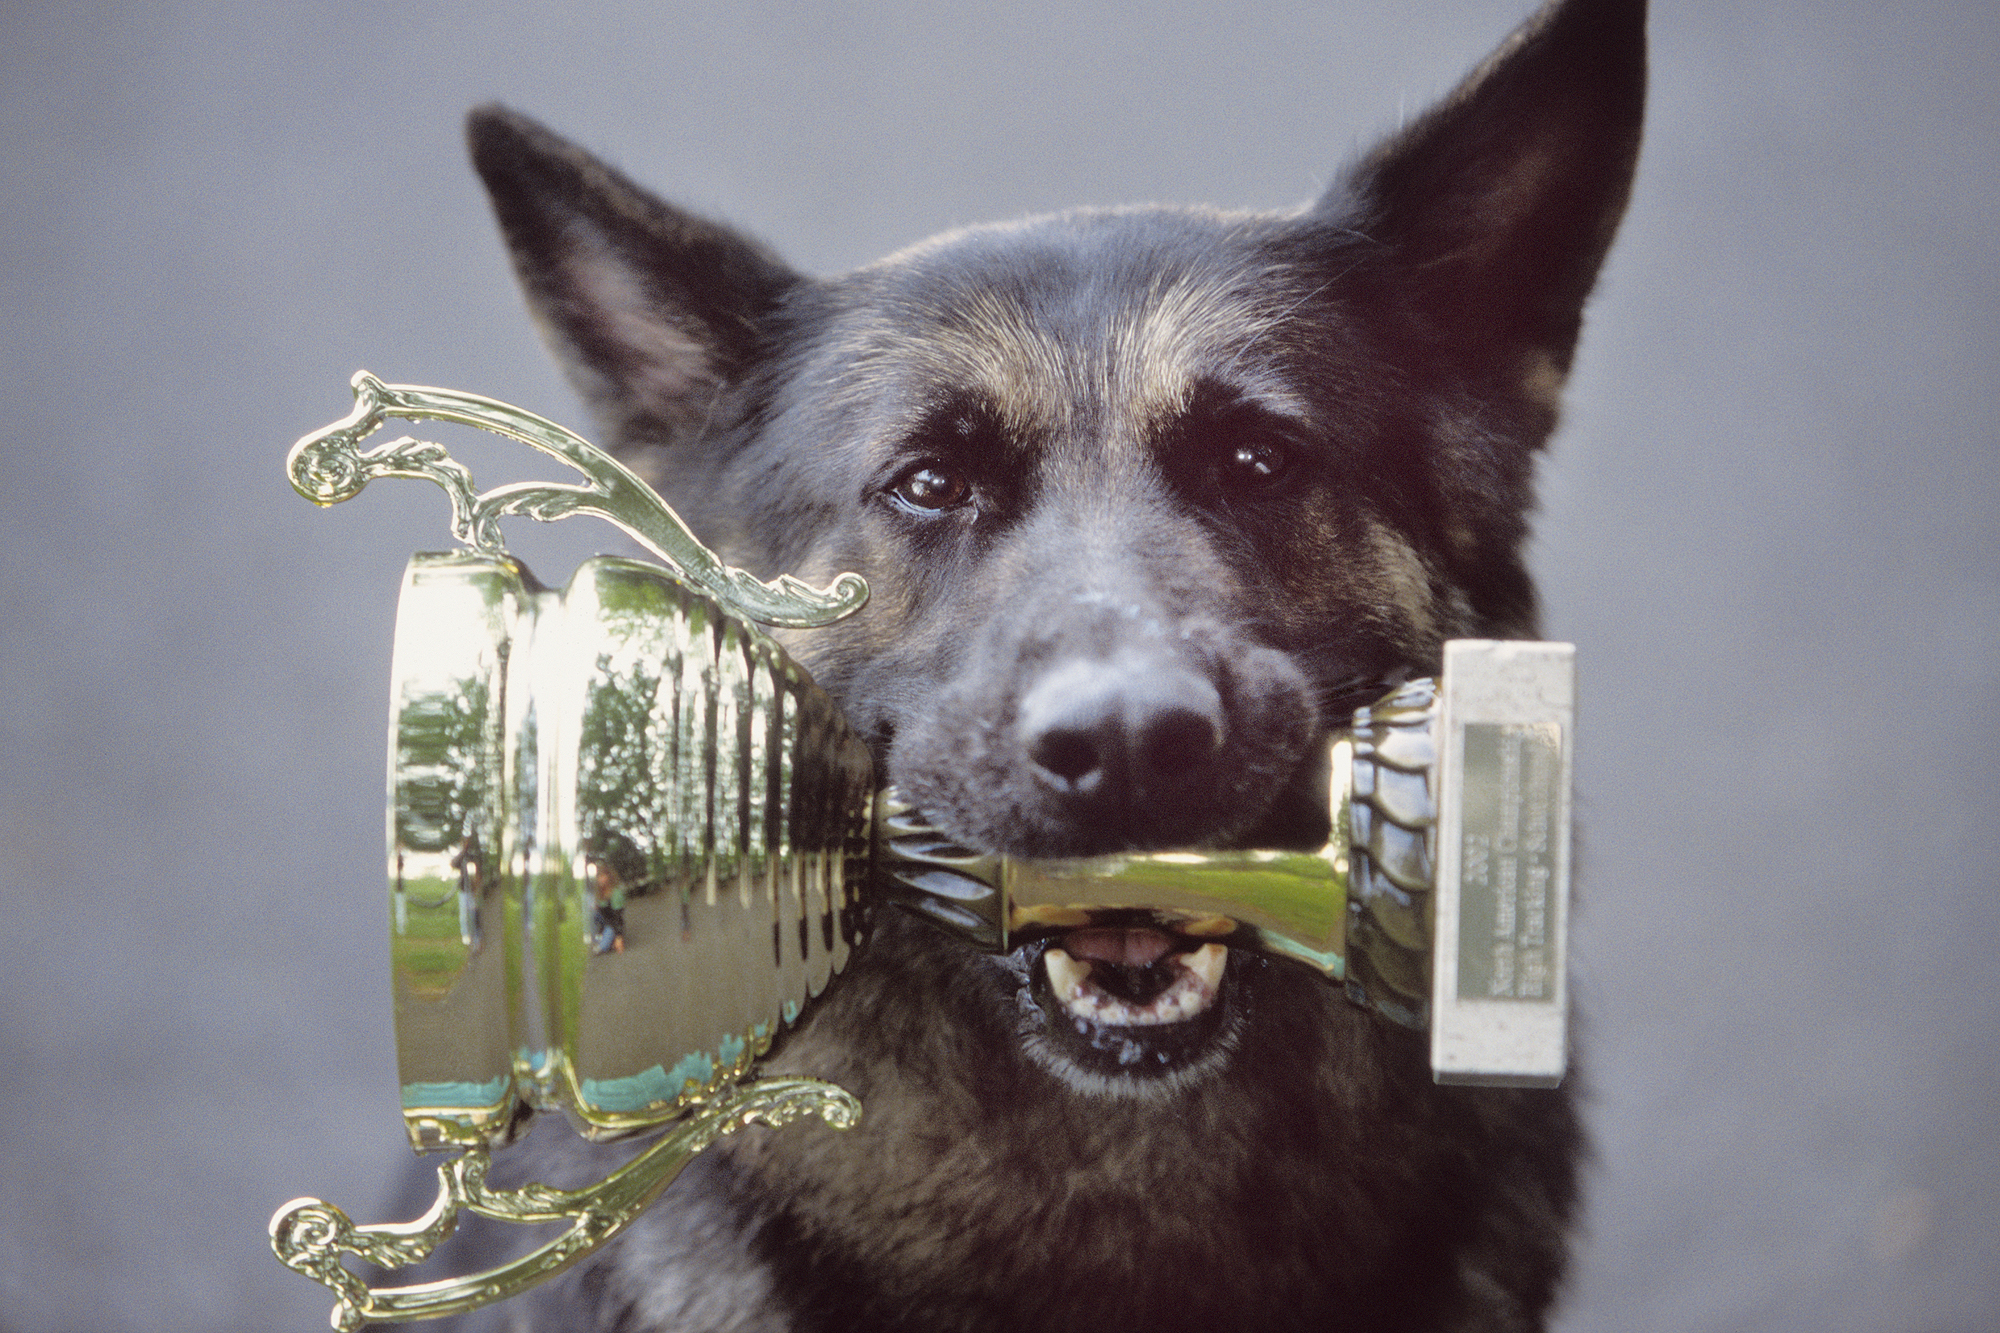 Dog Holding Trophy in Mouth